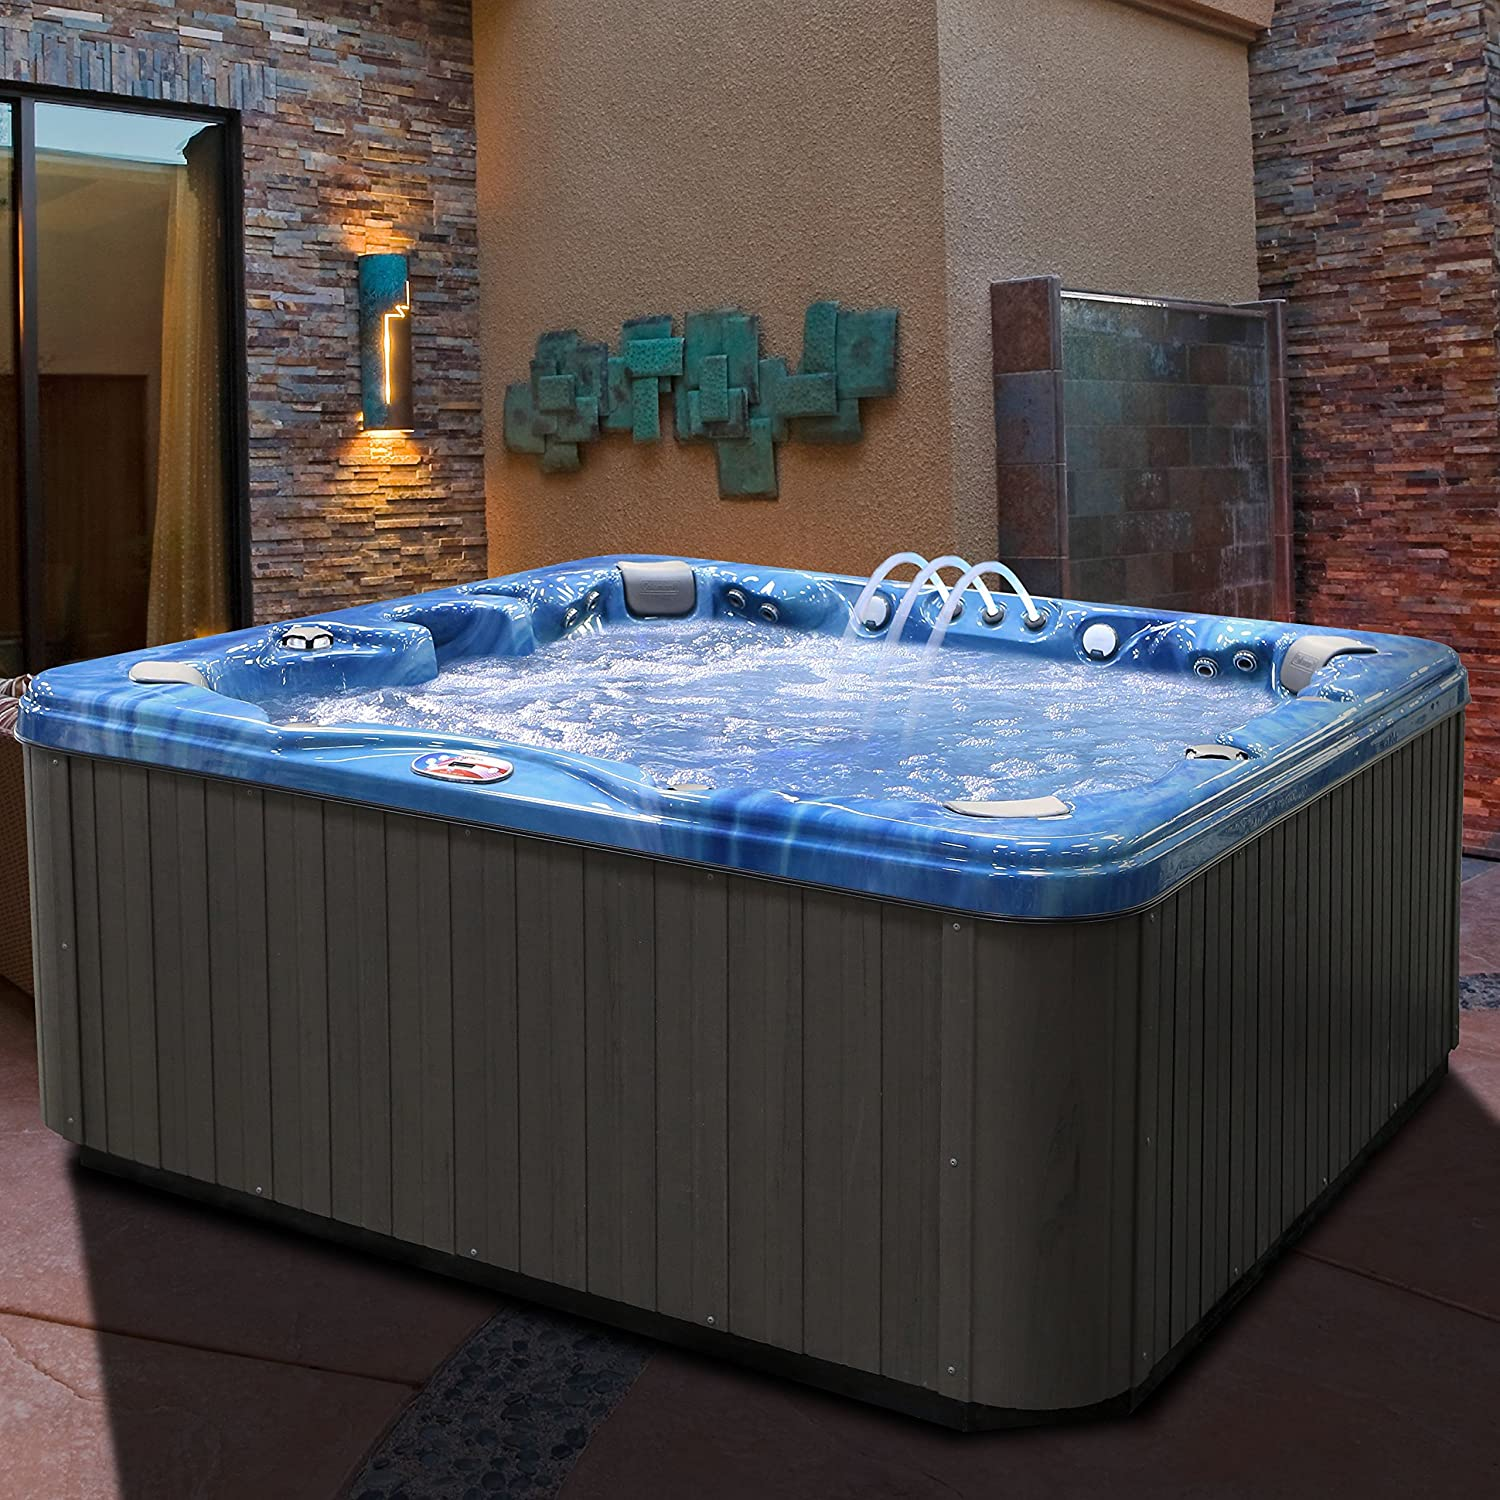 Amazon.com : American Spas AM-756BP 6-Person 56-Jet Bench Spa with ...